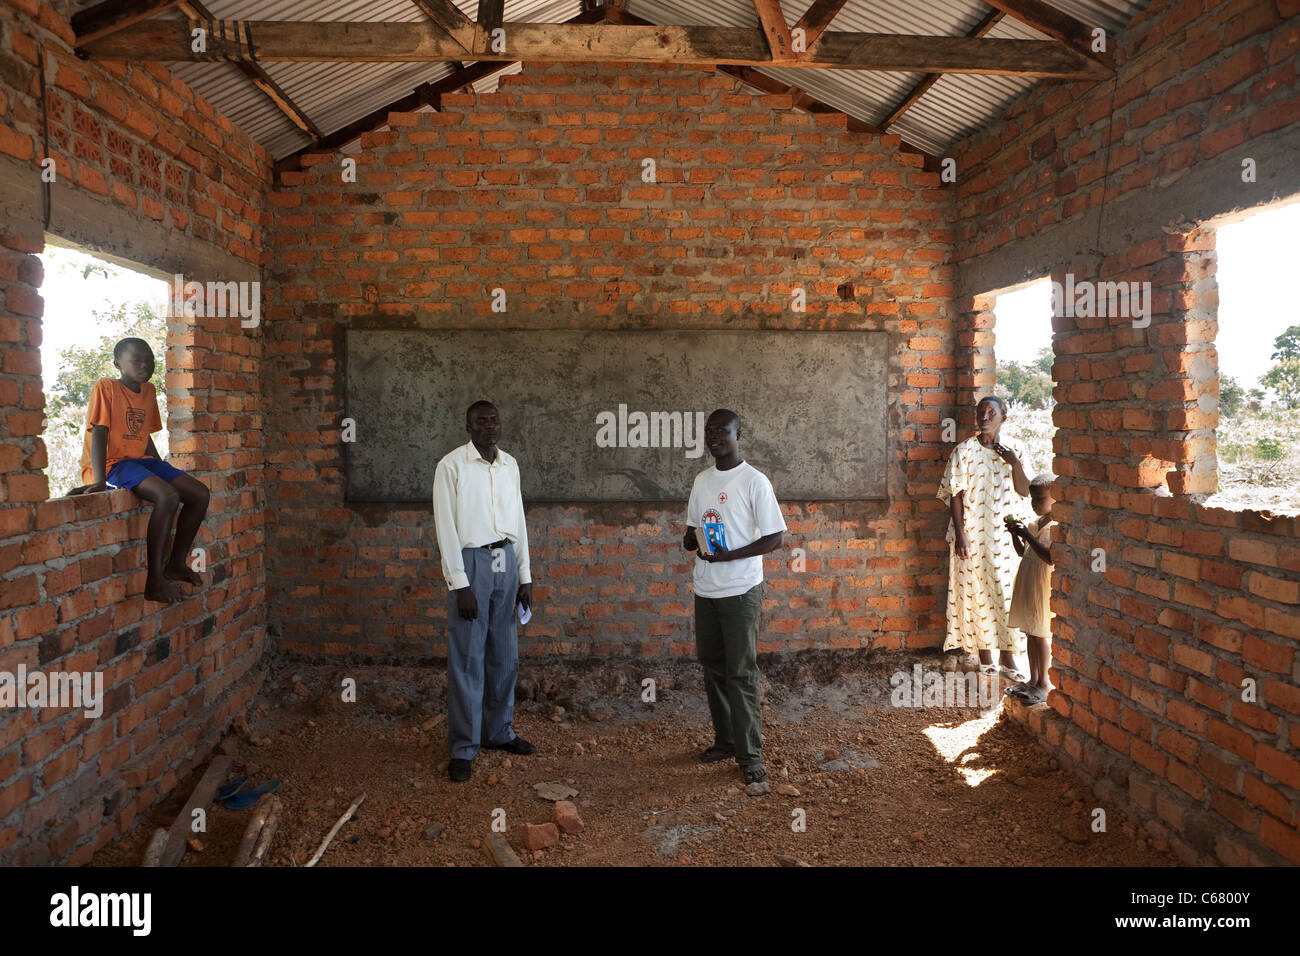 People stand in a vacant school room in Amuria, Uganda, East Africa. - Stock Image